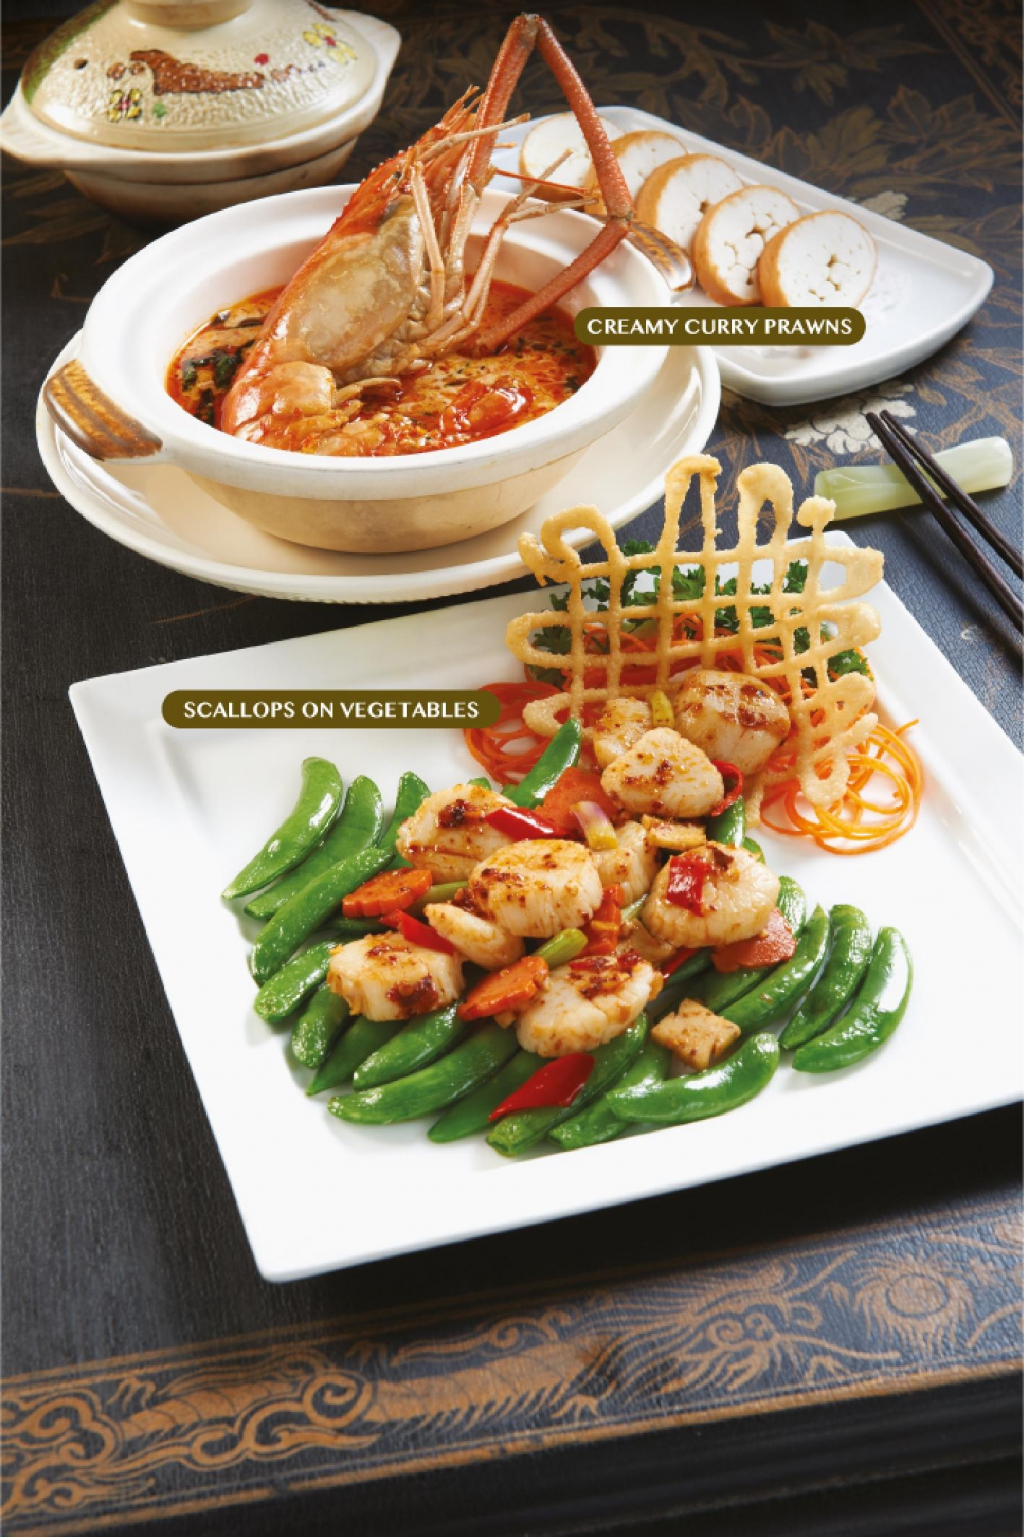 Marco polo authentic chinese cuisine for Authentic chinese cuisine